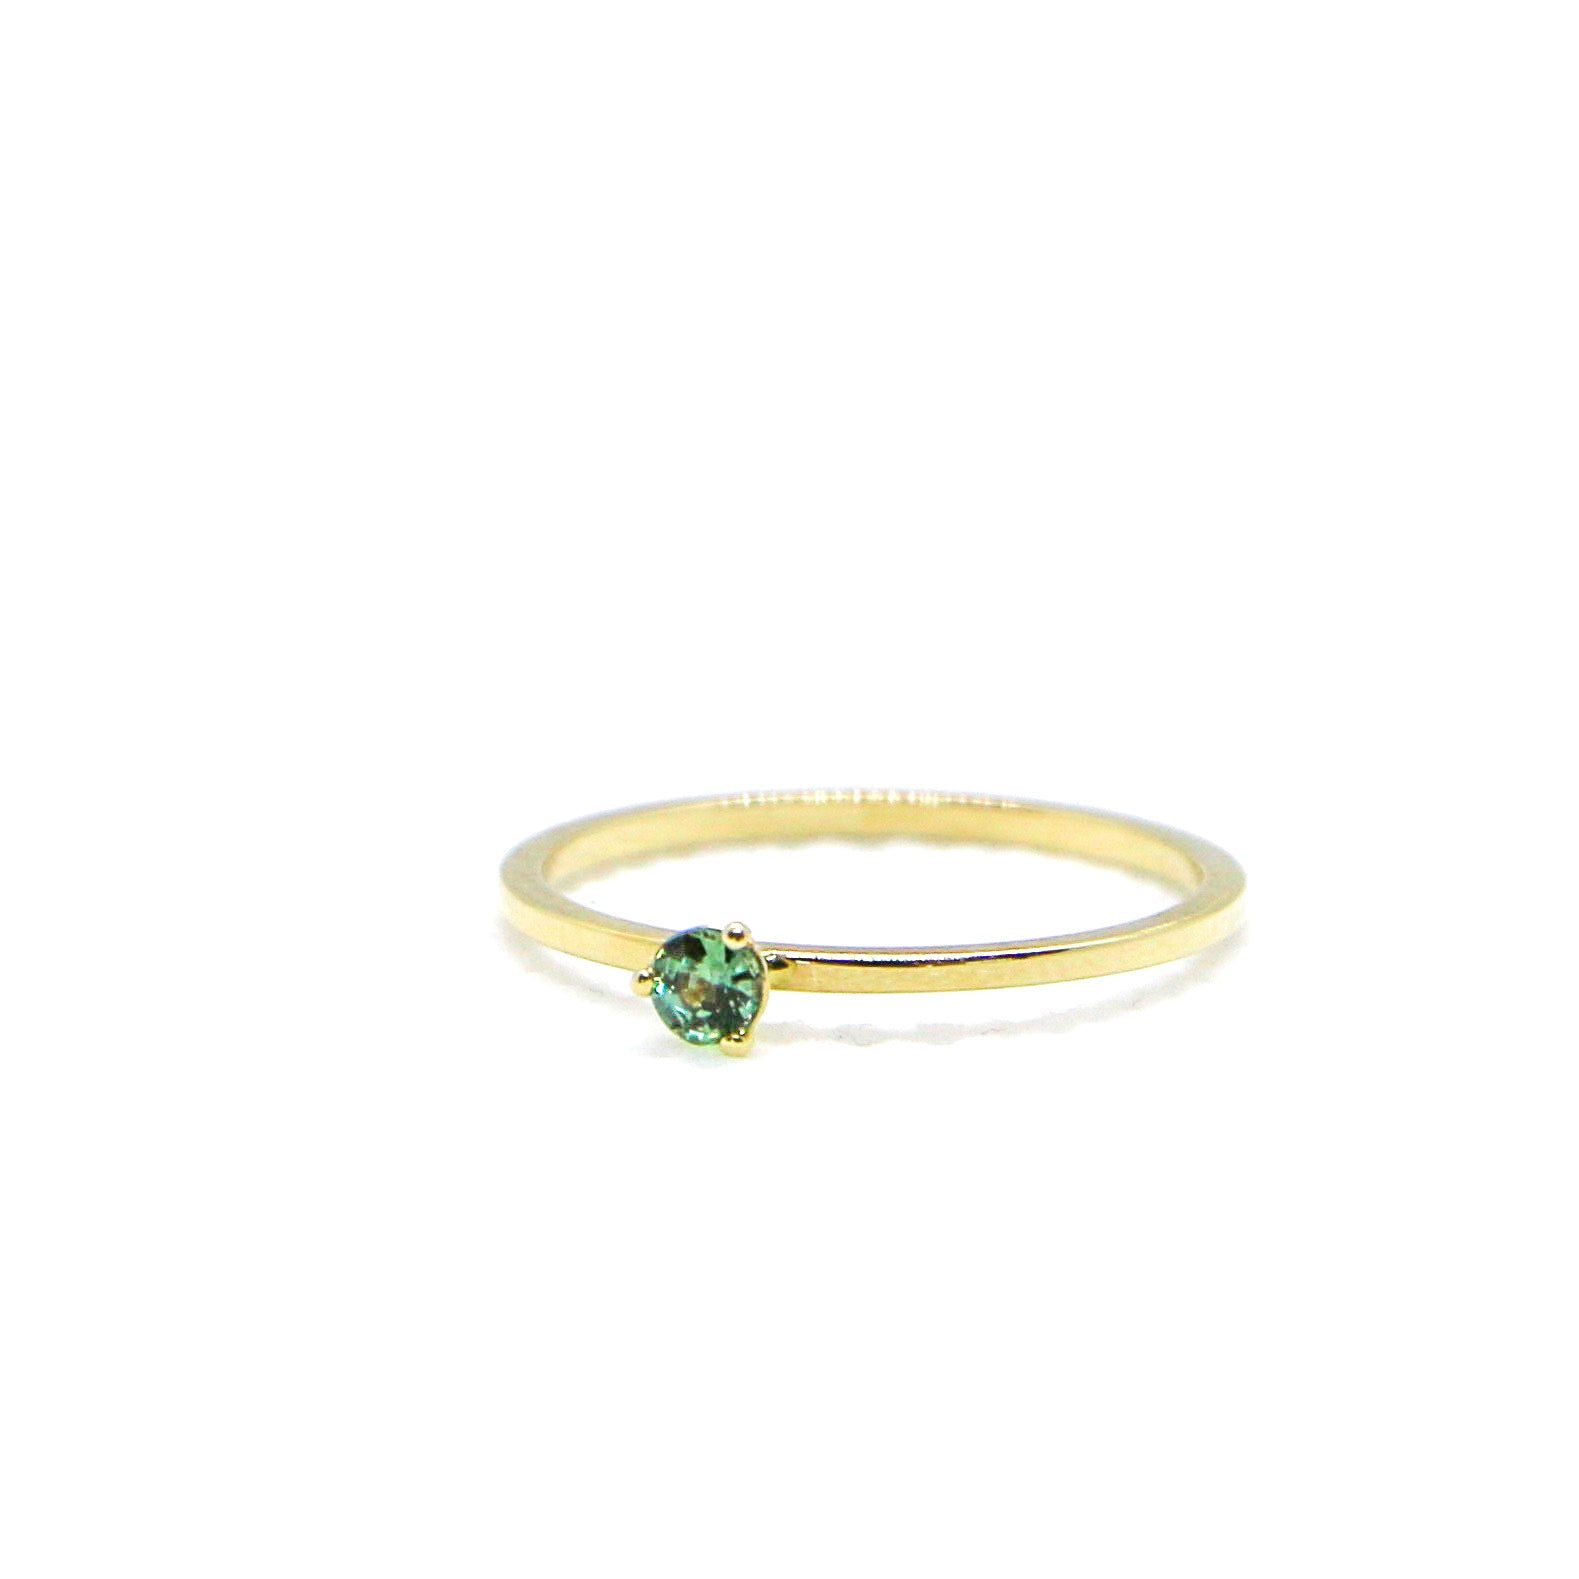 Hand Made June Birthstone and 14k Yellow Gold Stacking Ring